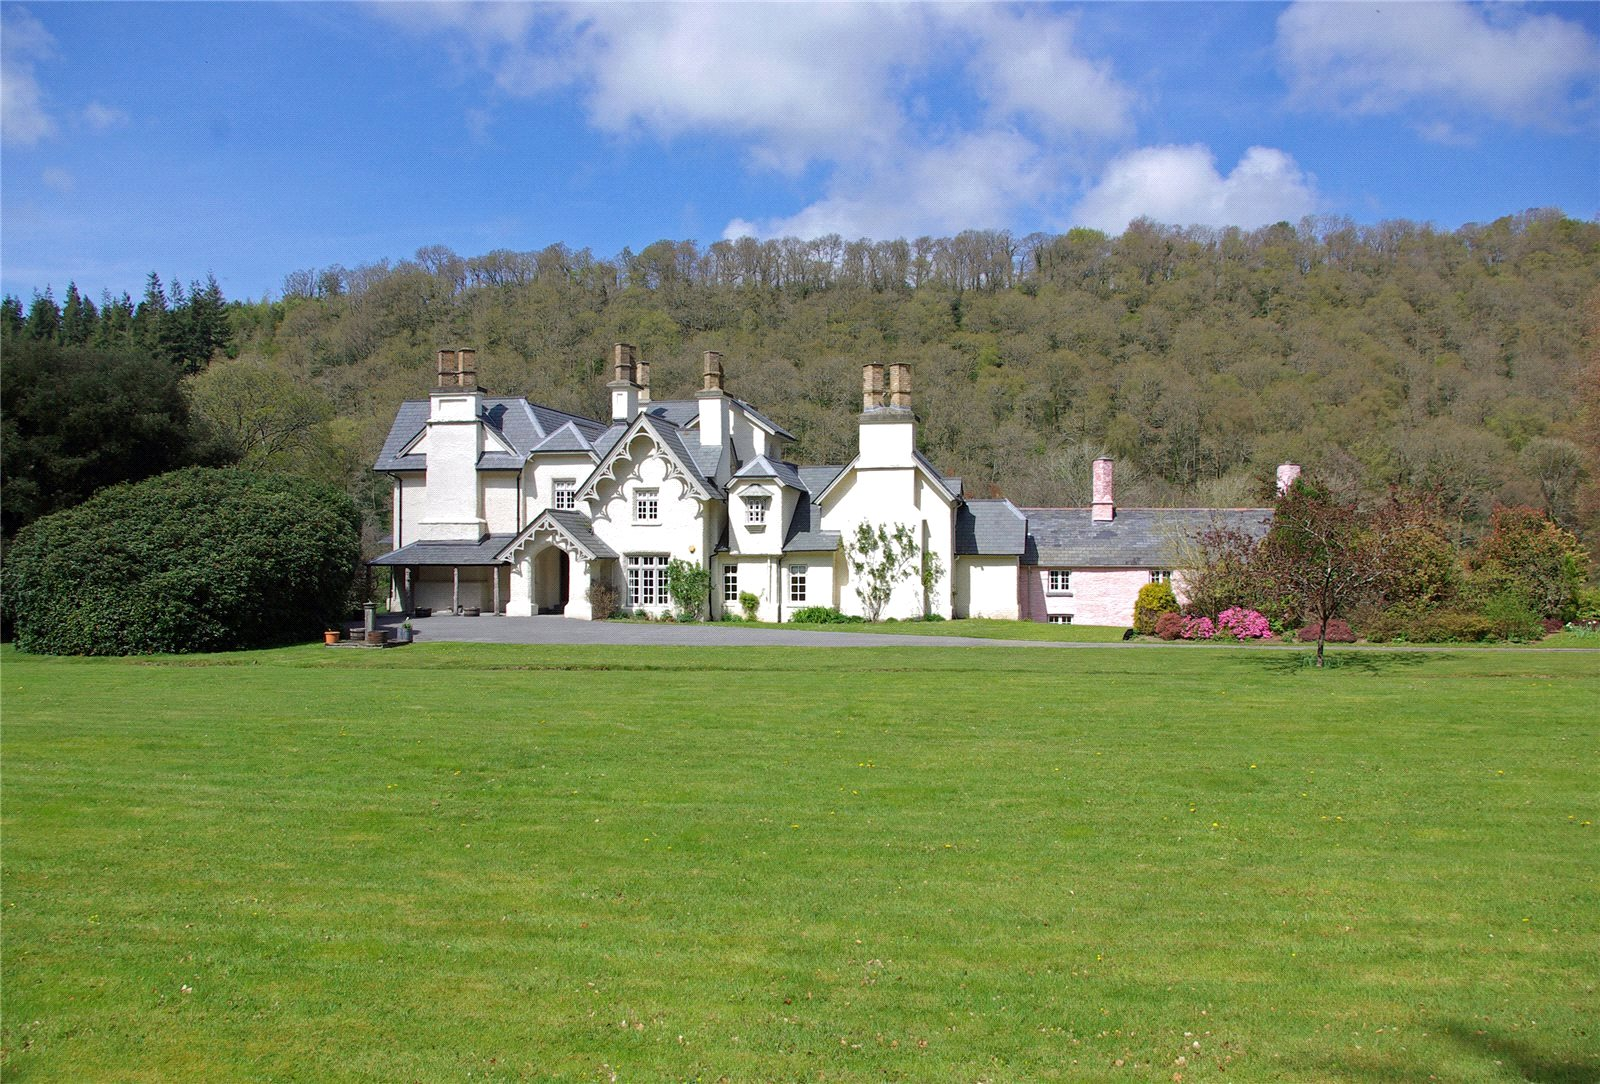 7 Bedrooms Detached House for sale in Lancych, Boncath, Pembrokeshire